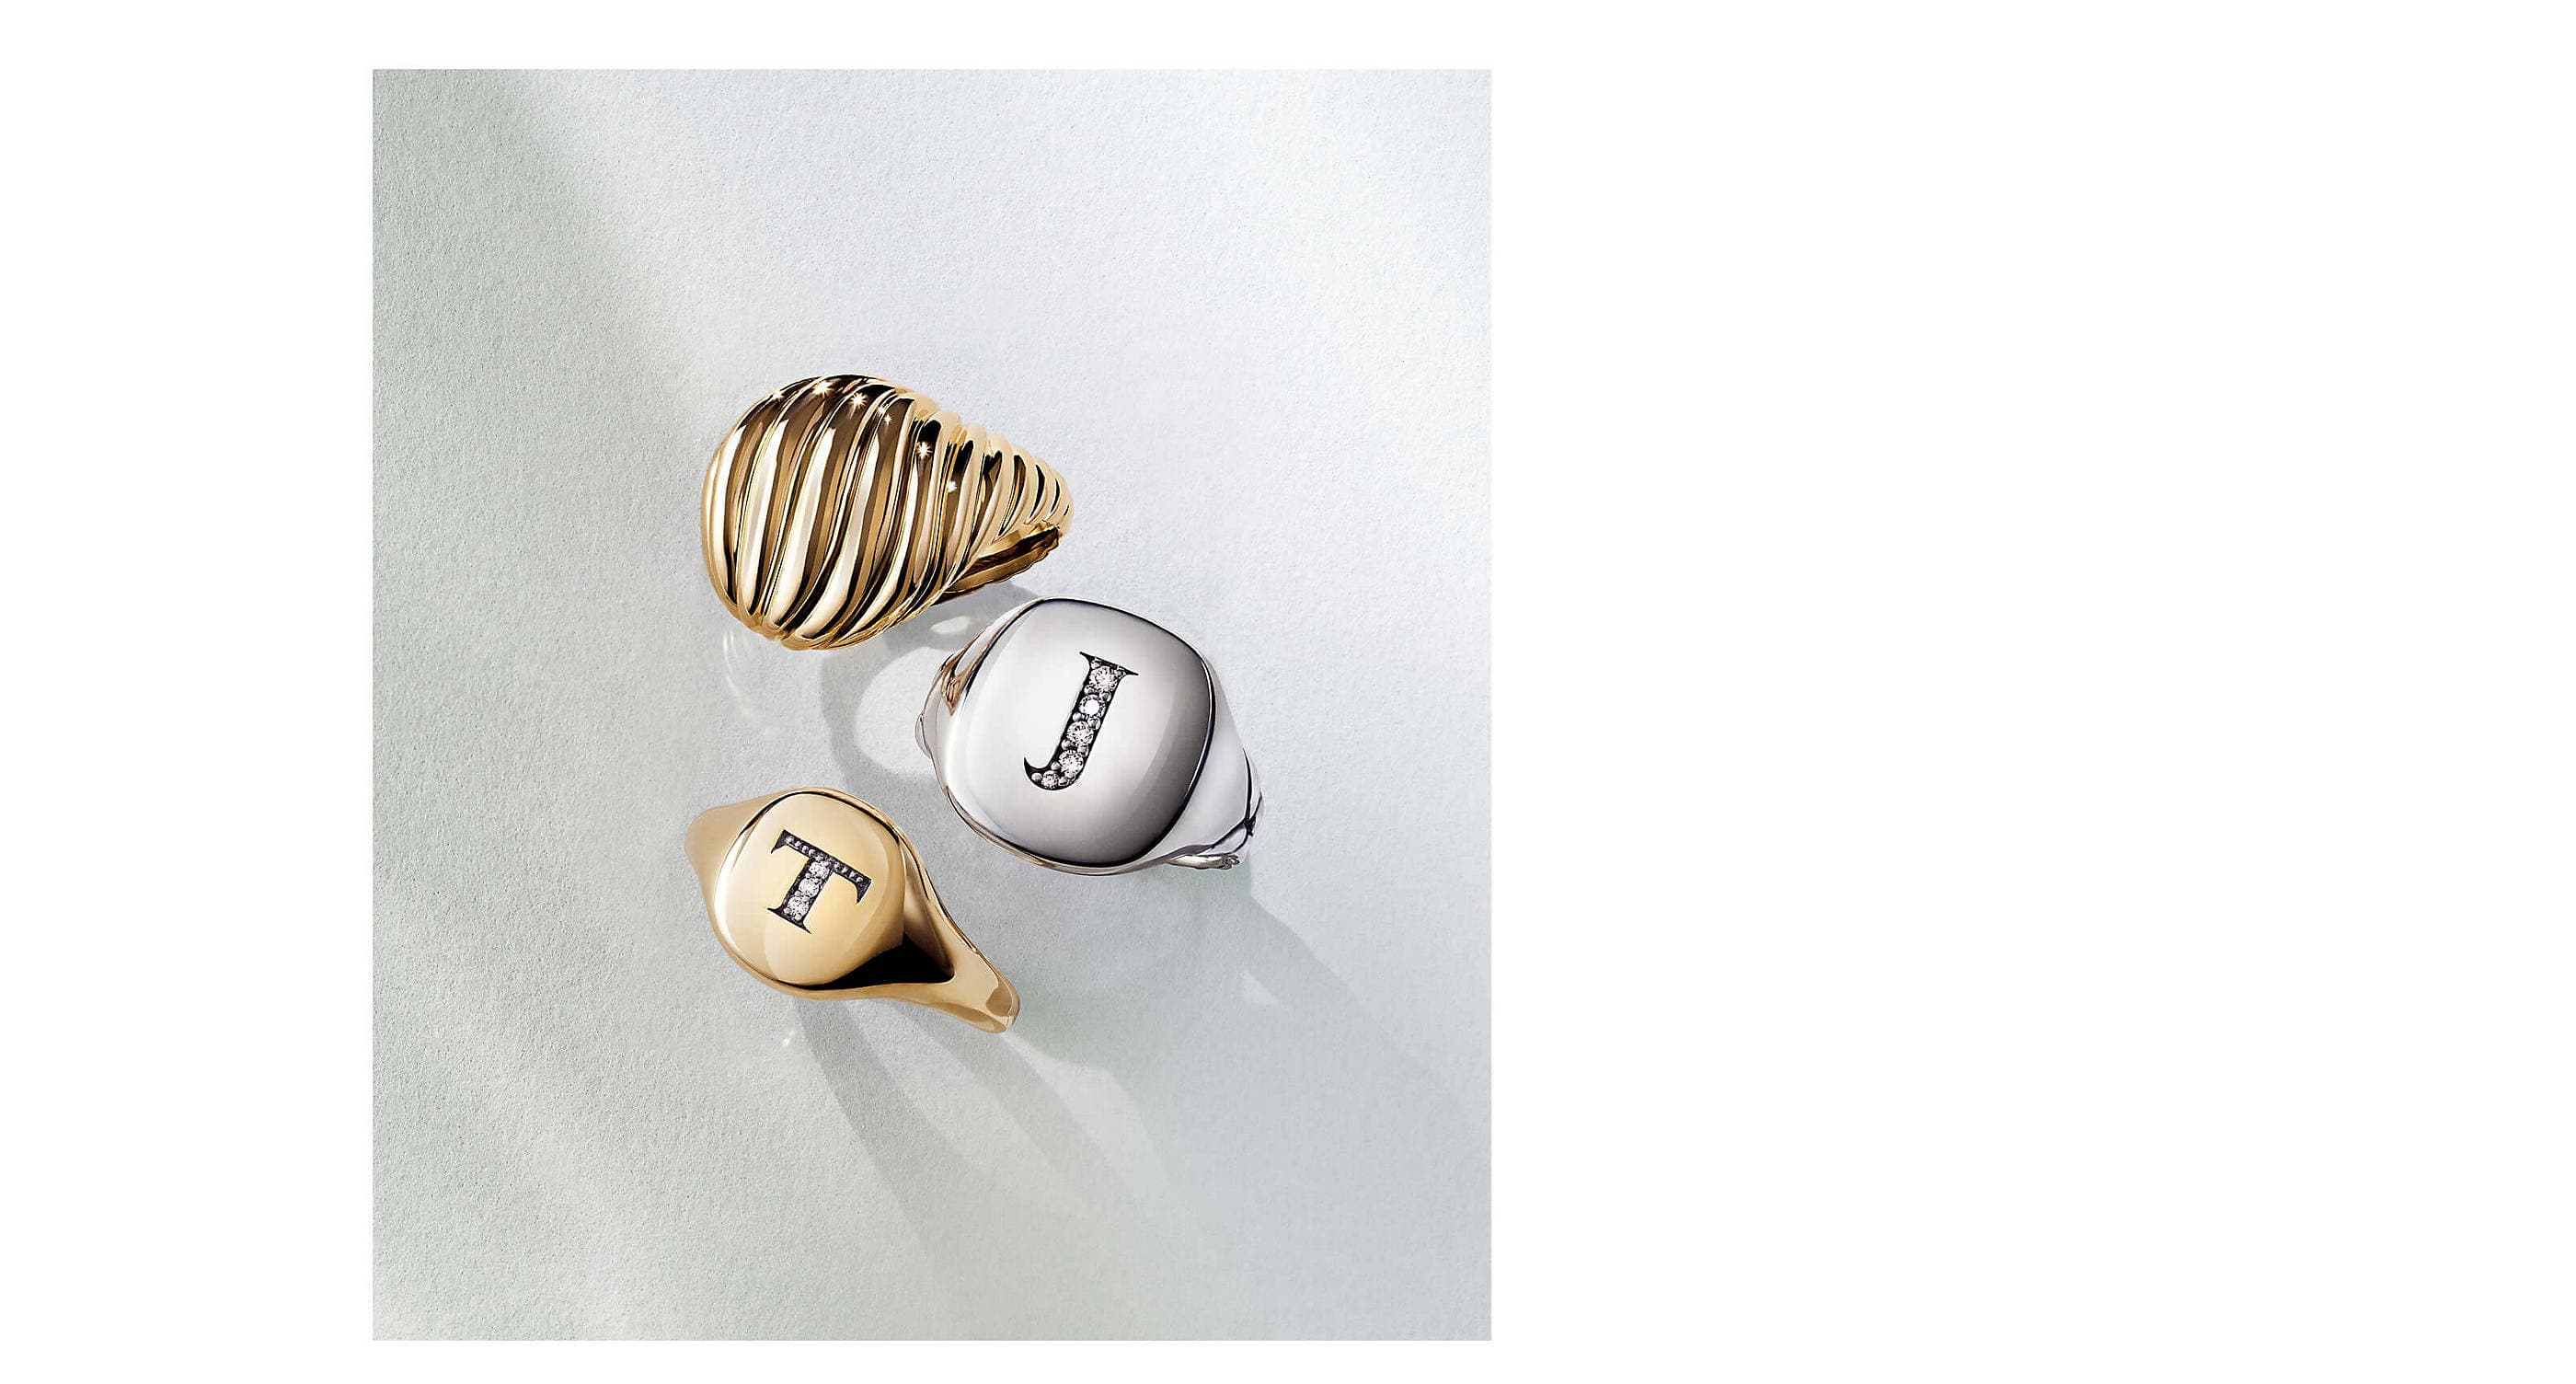 A color photo shows three David Yurman pinky rings on a white background with soft shadows. Two rings are crafted from Cabled or smooth 18K yellow gold with or without a pavé diamond letter T. One ring is crafted from sterling silver with the letter J in pavé diamonds.